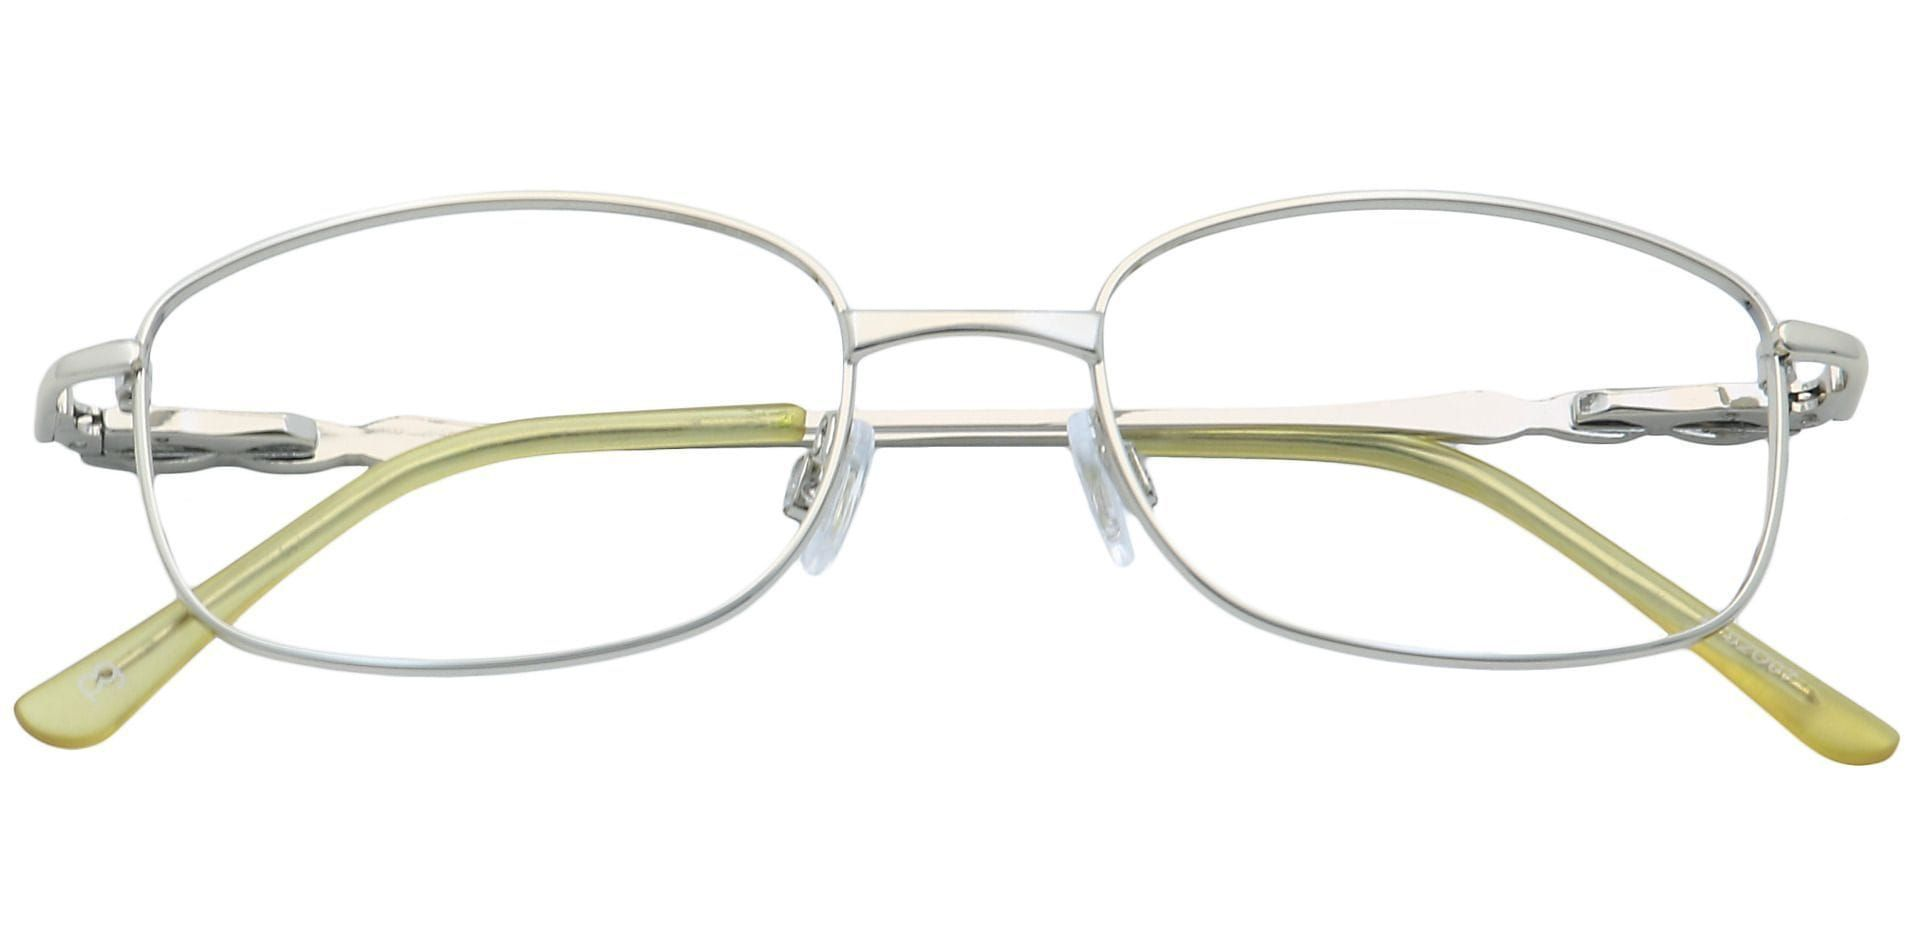 Halley Oval Prescription Glasses - Silver